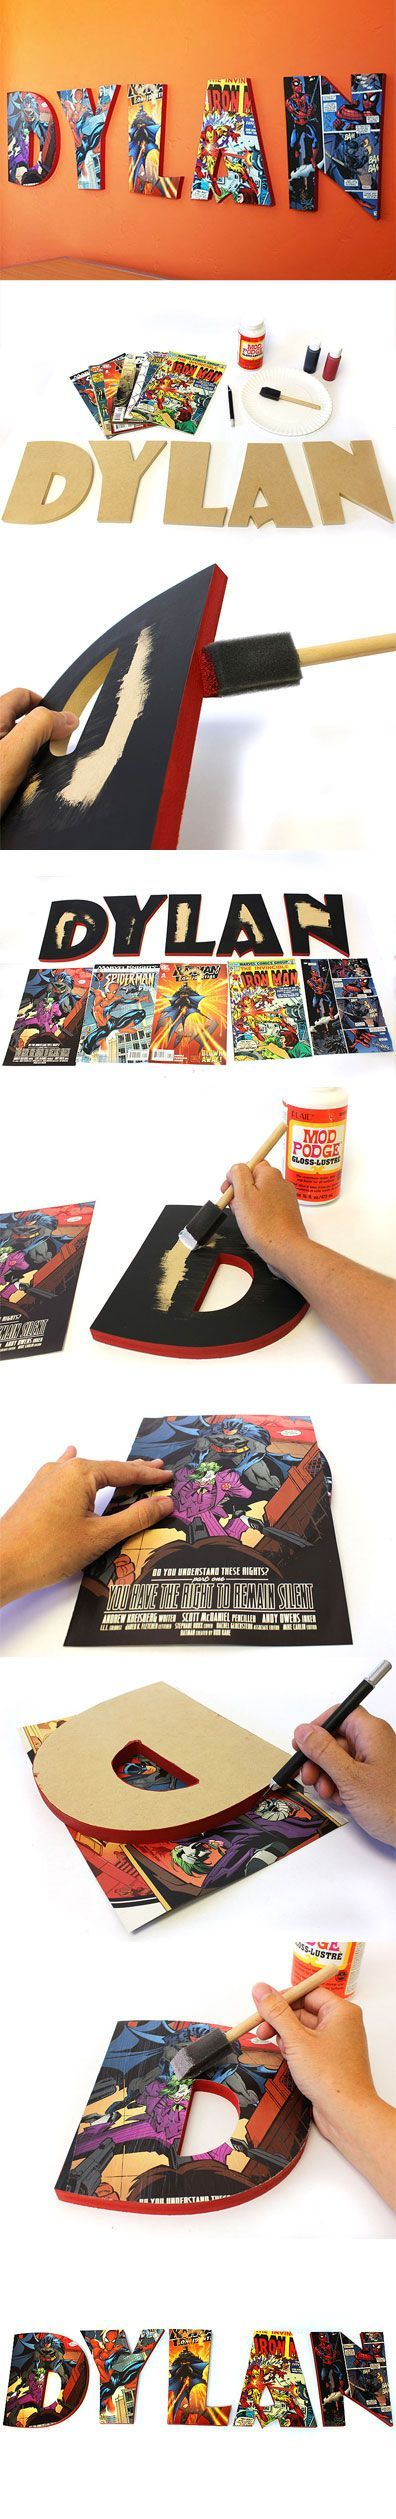 How to Make Comic Book Letters | Wood Comic Book Letters | CraftCuts.com